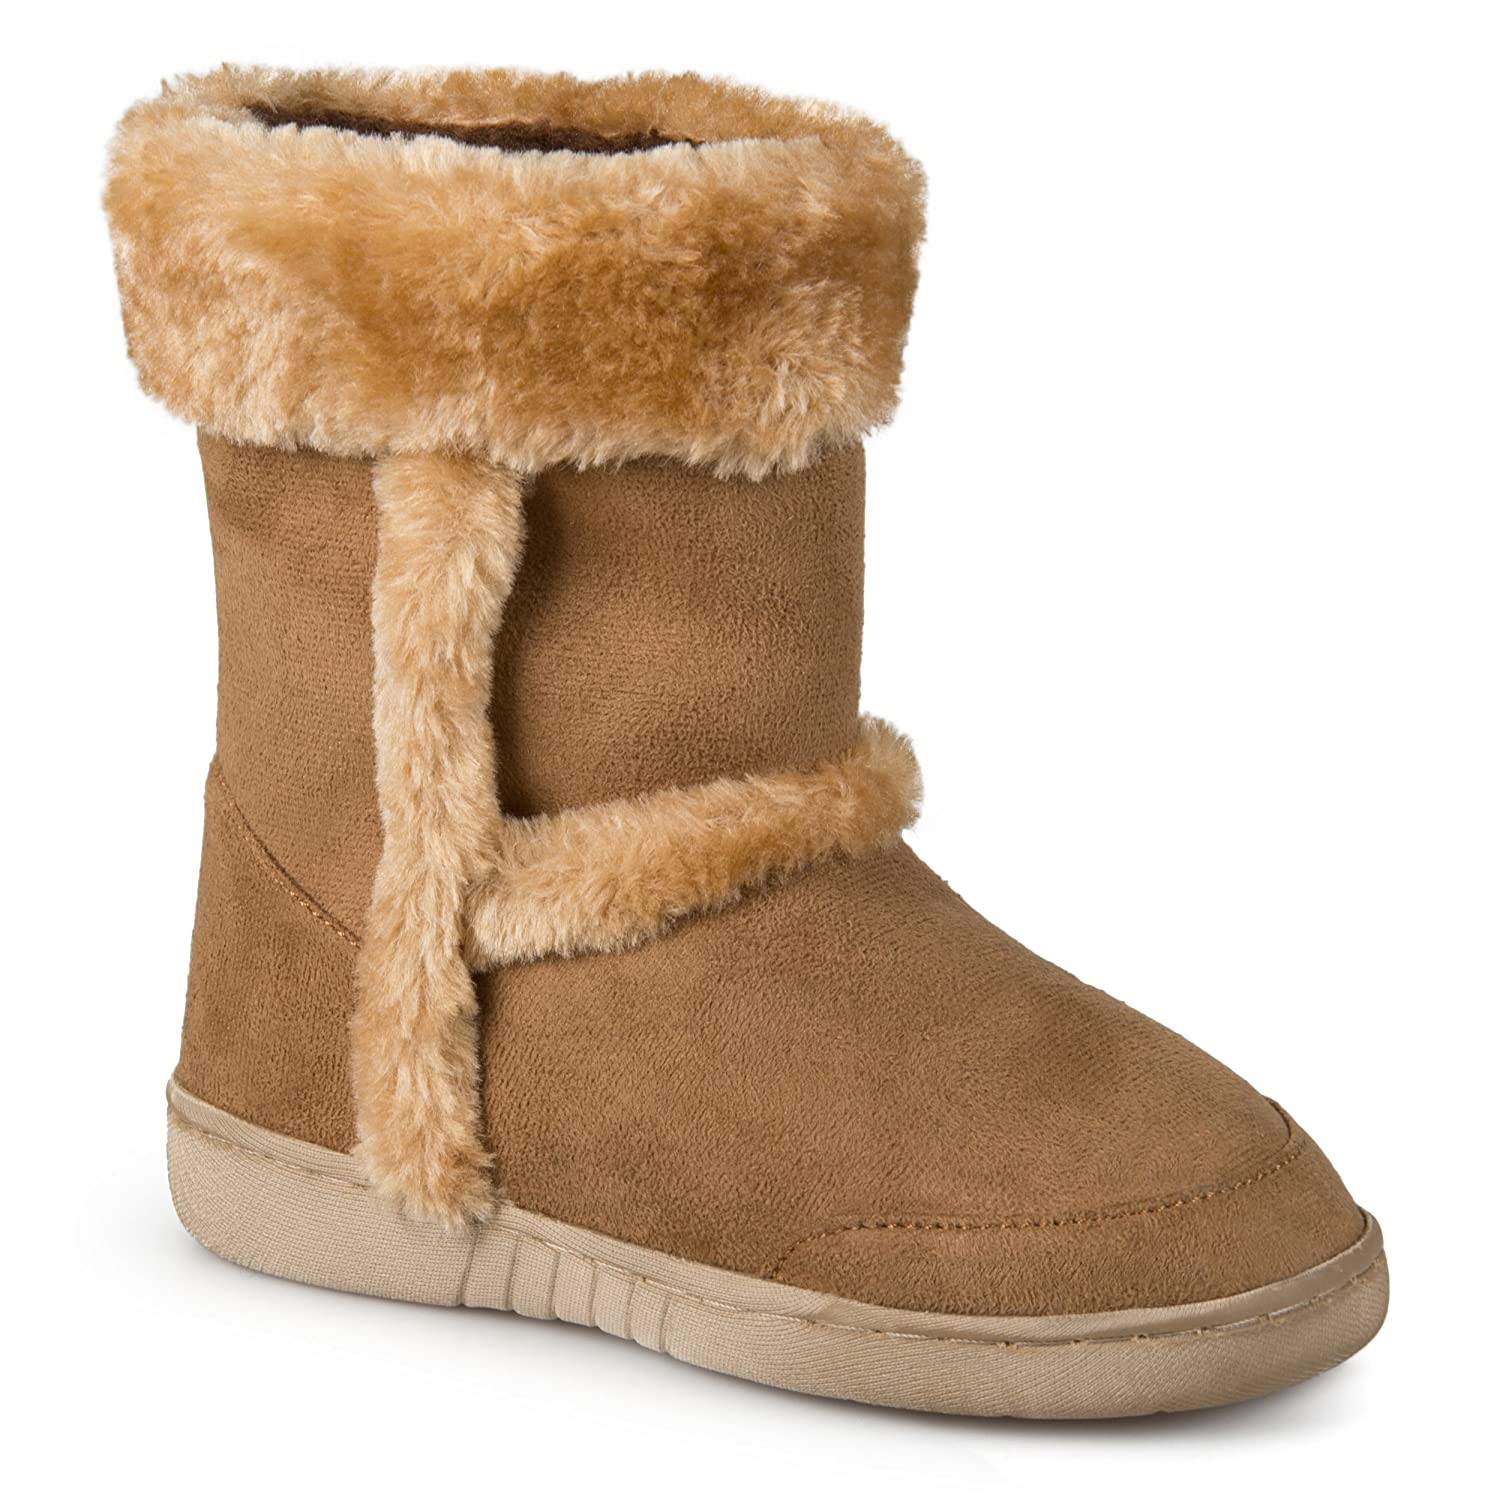 Journee Collection Kids Girls Faux Fur Trim Boots